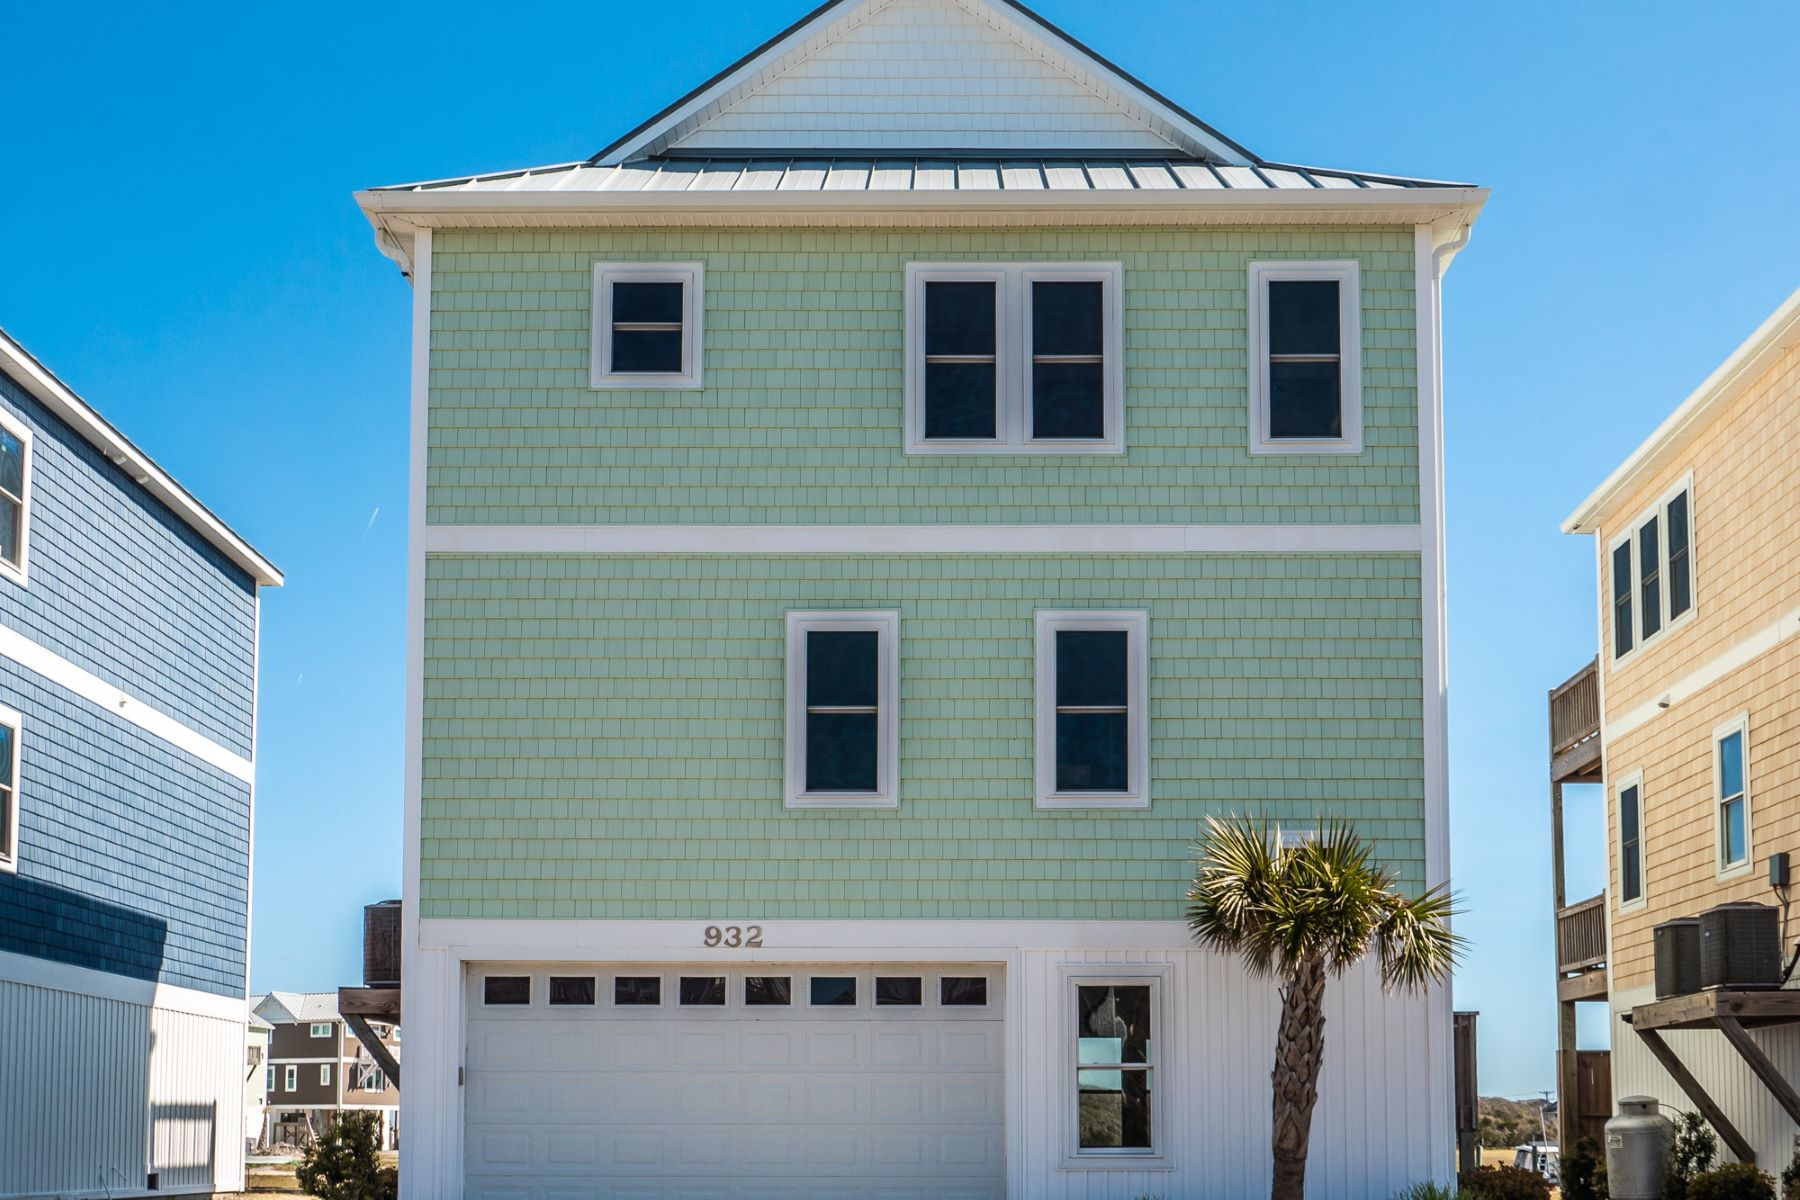 Single Family Homes for Sale at Waterfront Home with Wide Open Views of Topsail Sound 932 Observation Lane Topsail Beach, North Carolina 28445 United States